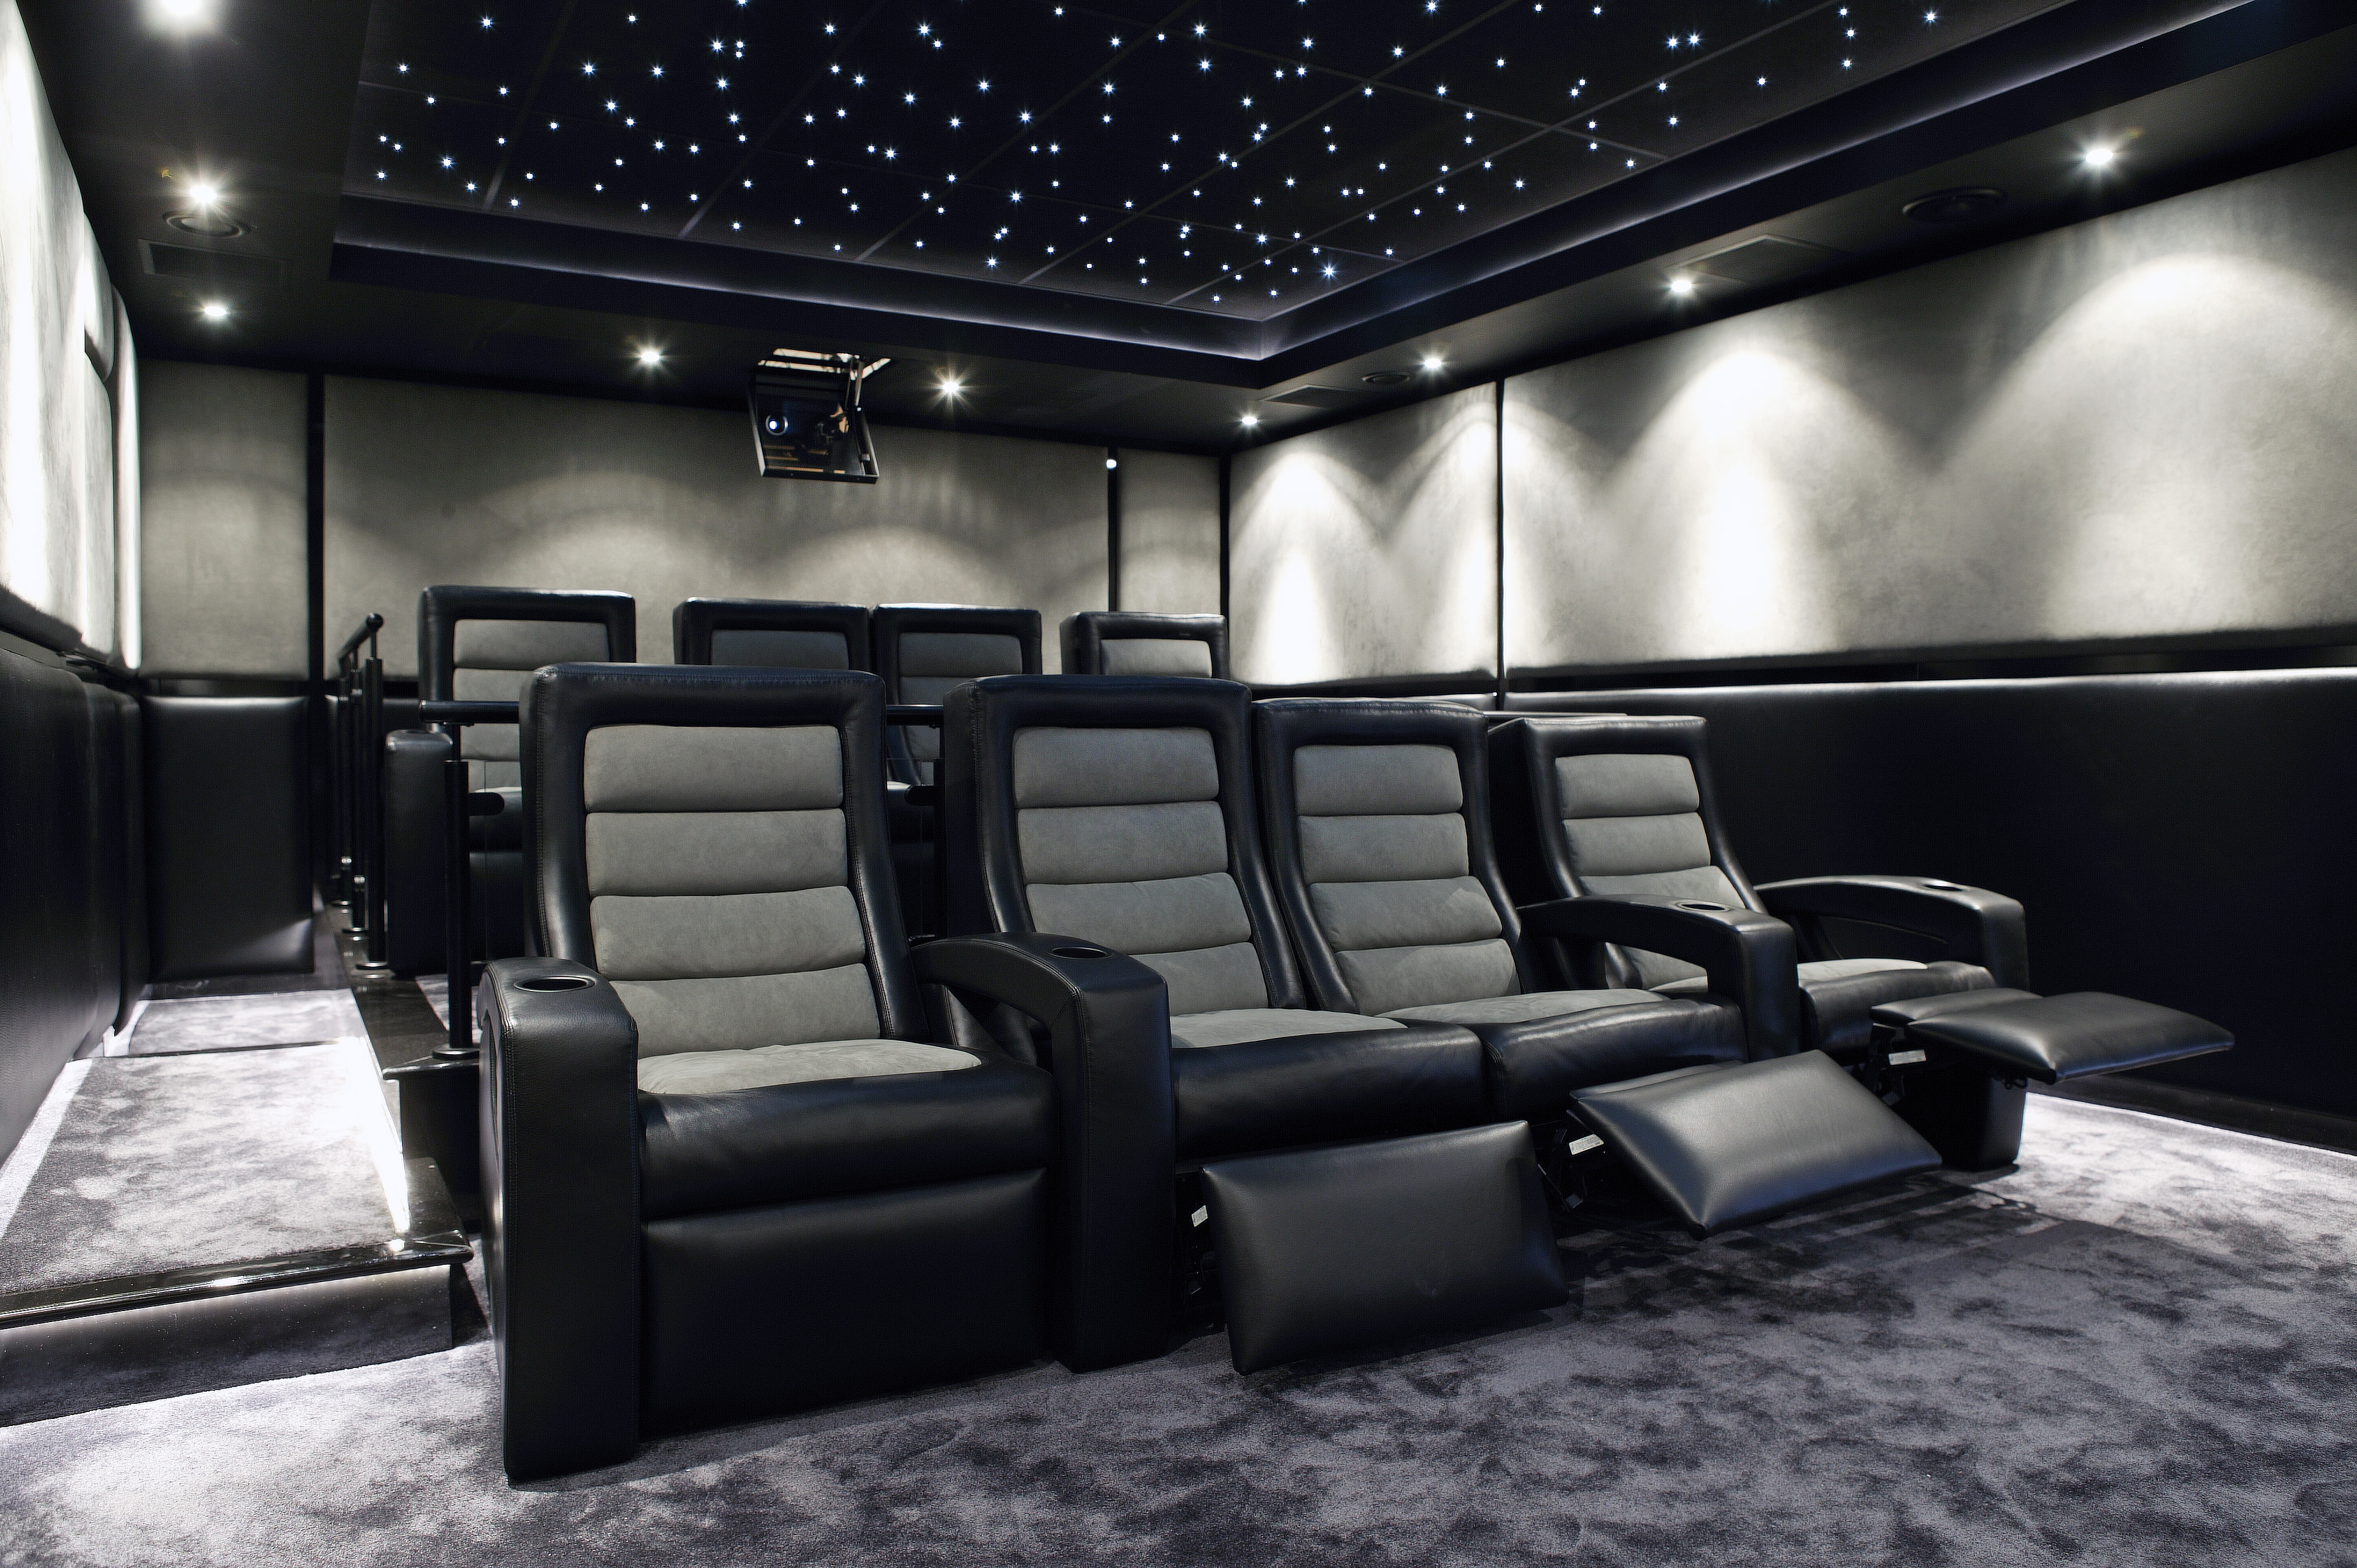 Home Cinema Trusted Technology